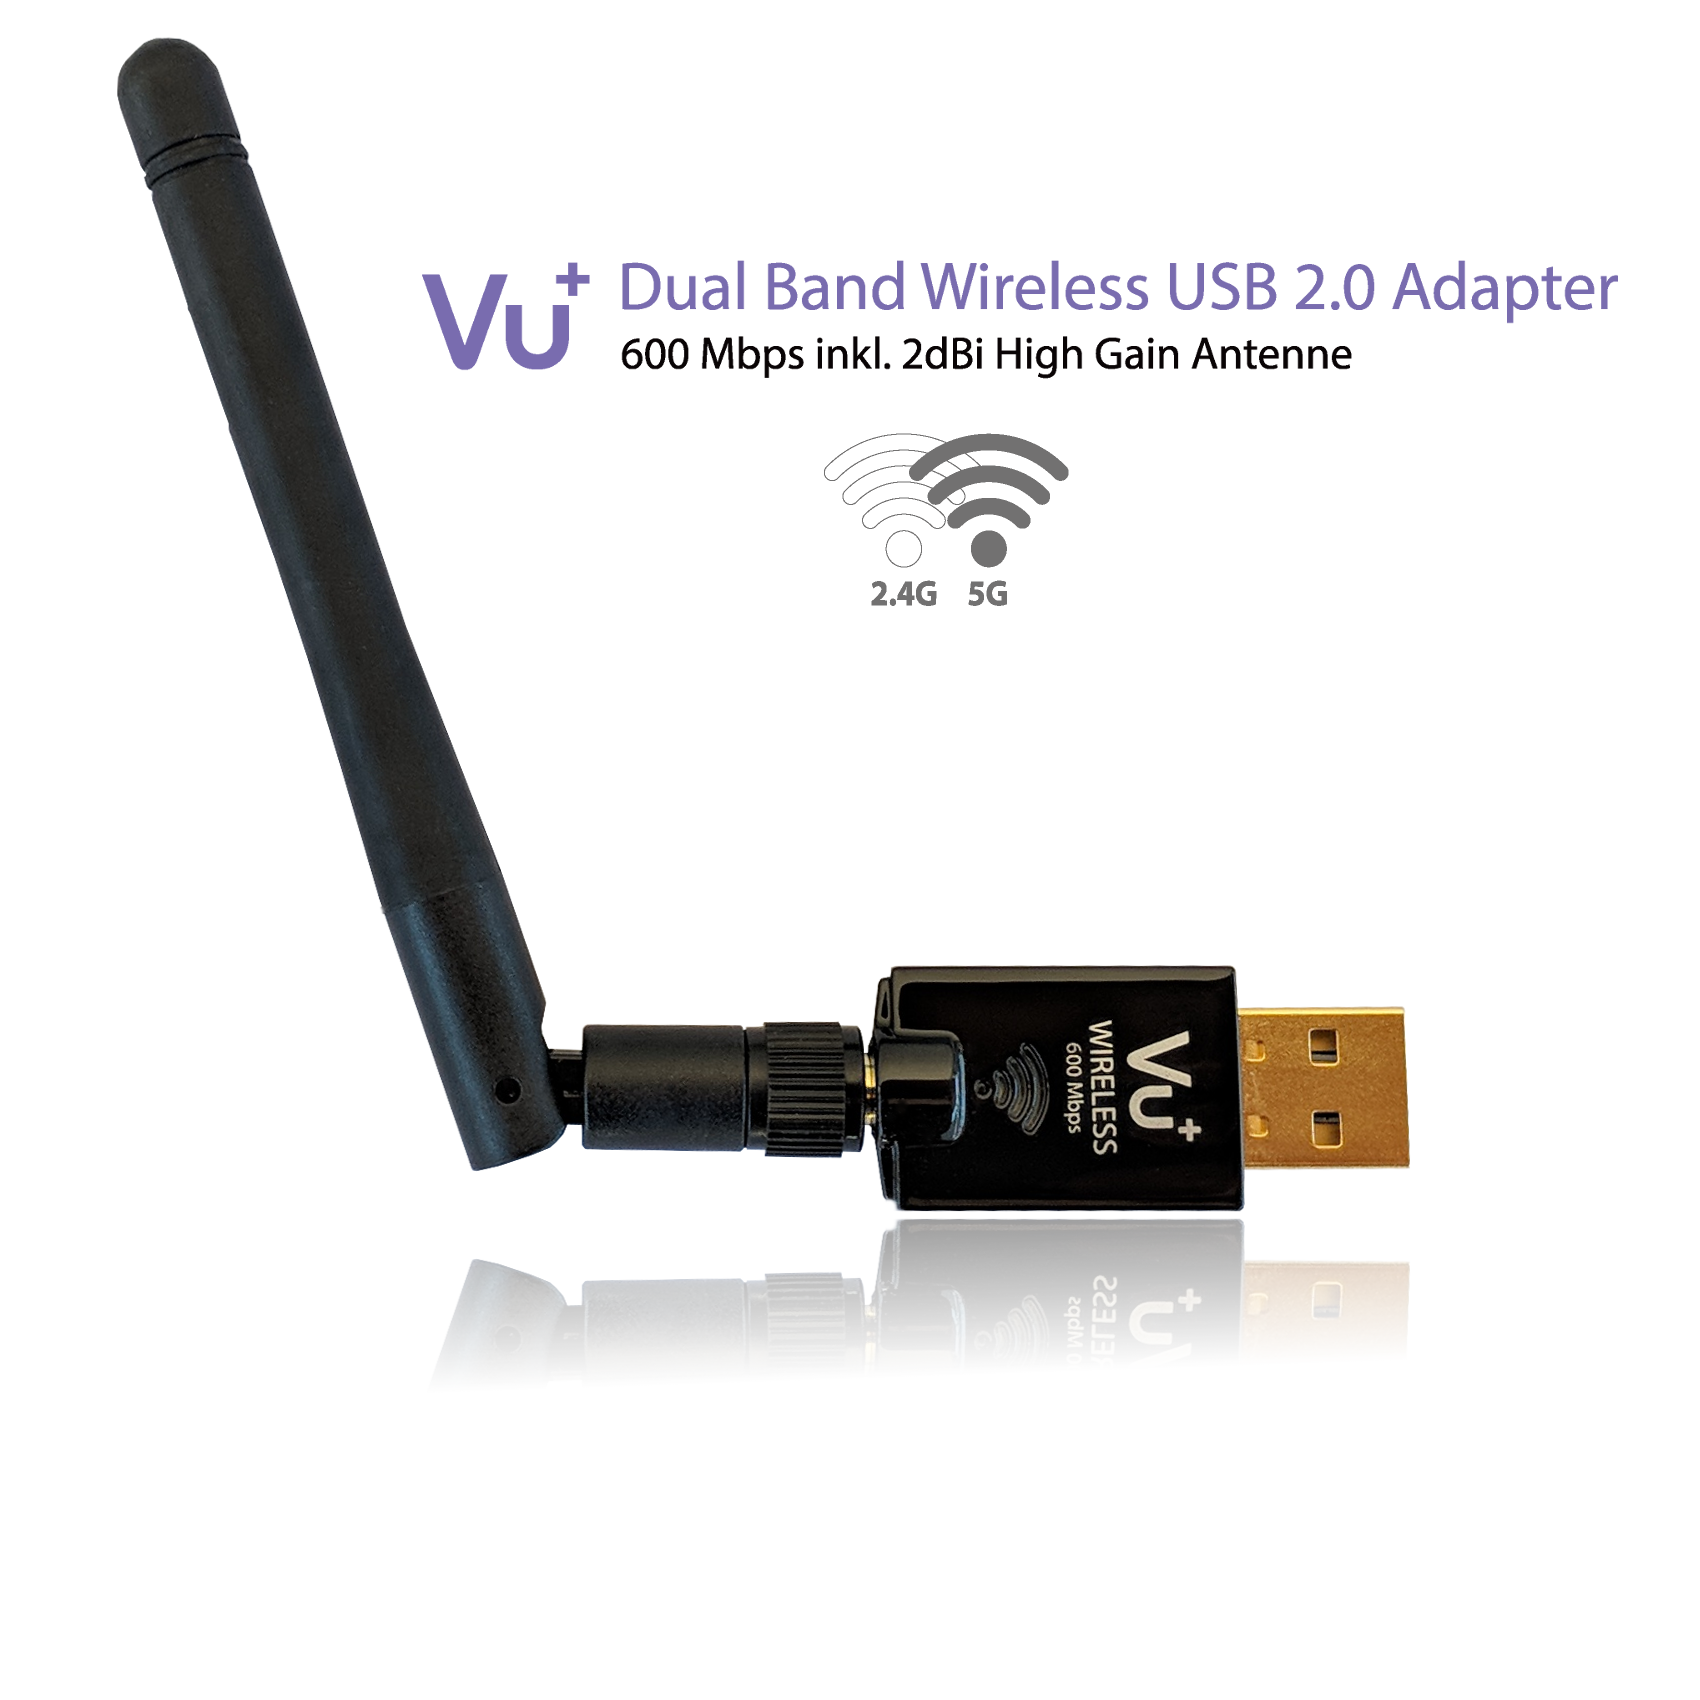 VU+® Dual Band Wireless USB 2.0 Adapter 600 Mbps inkl. Antenne